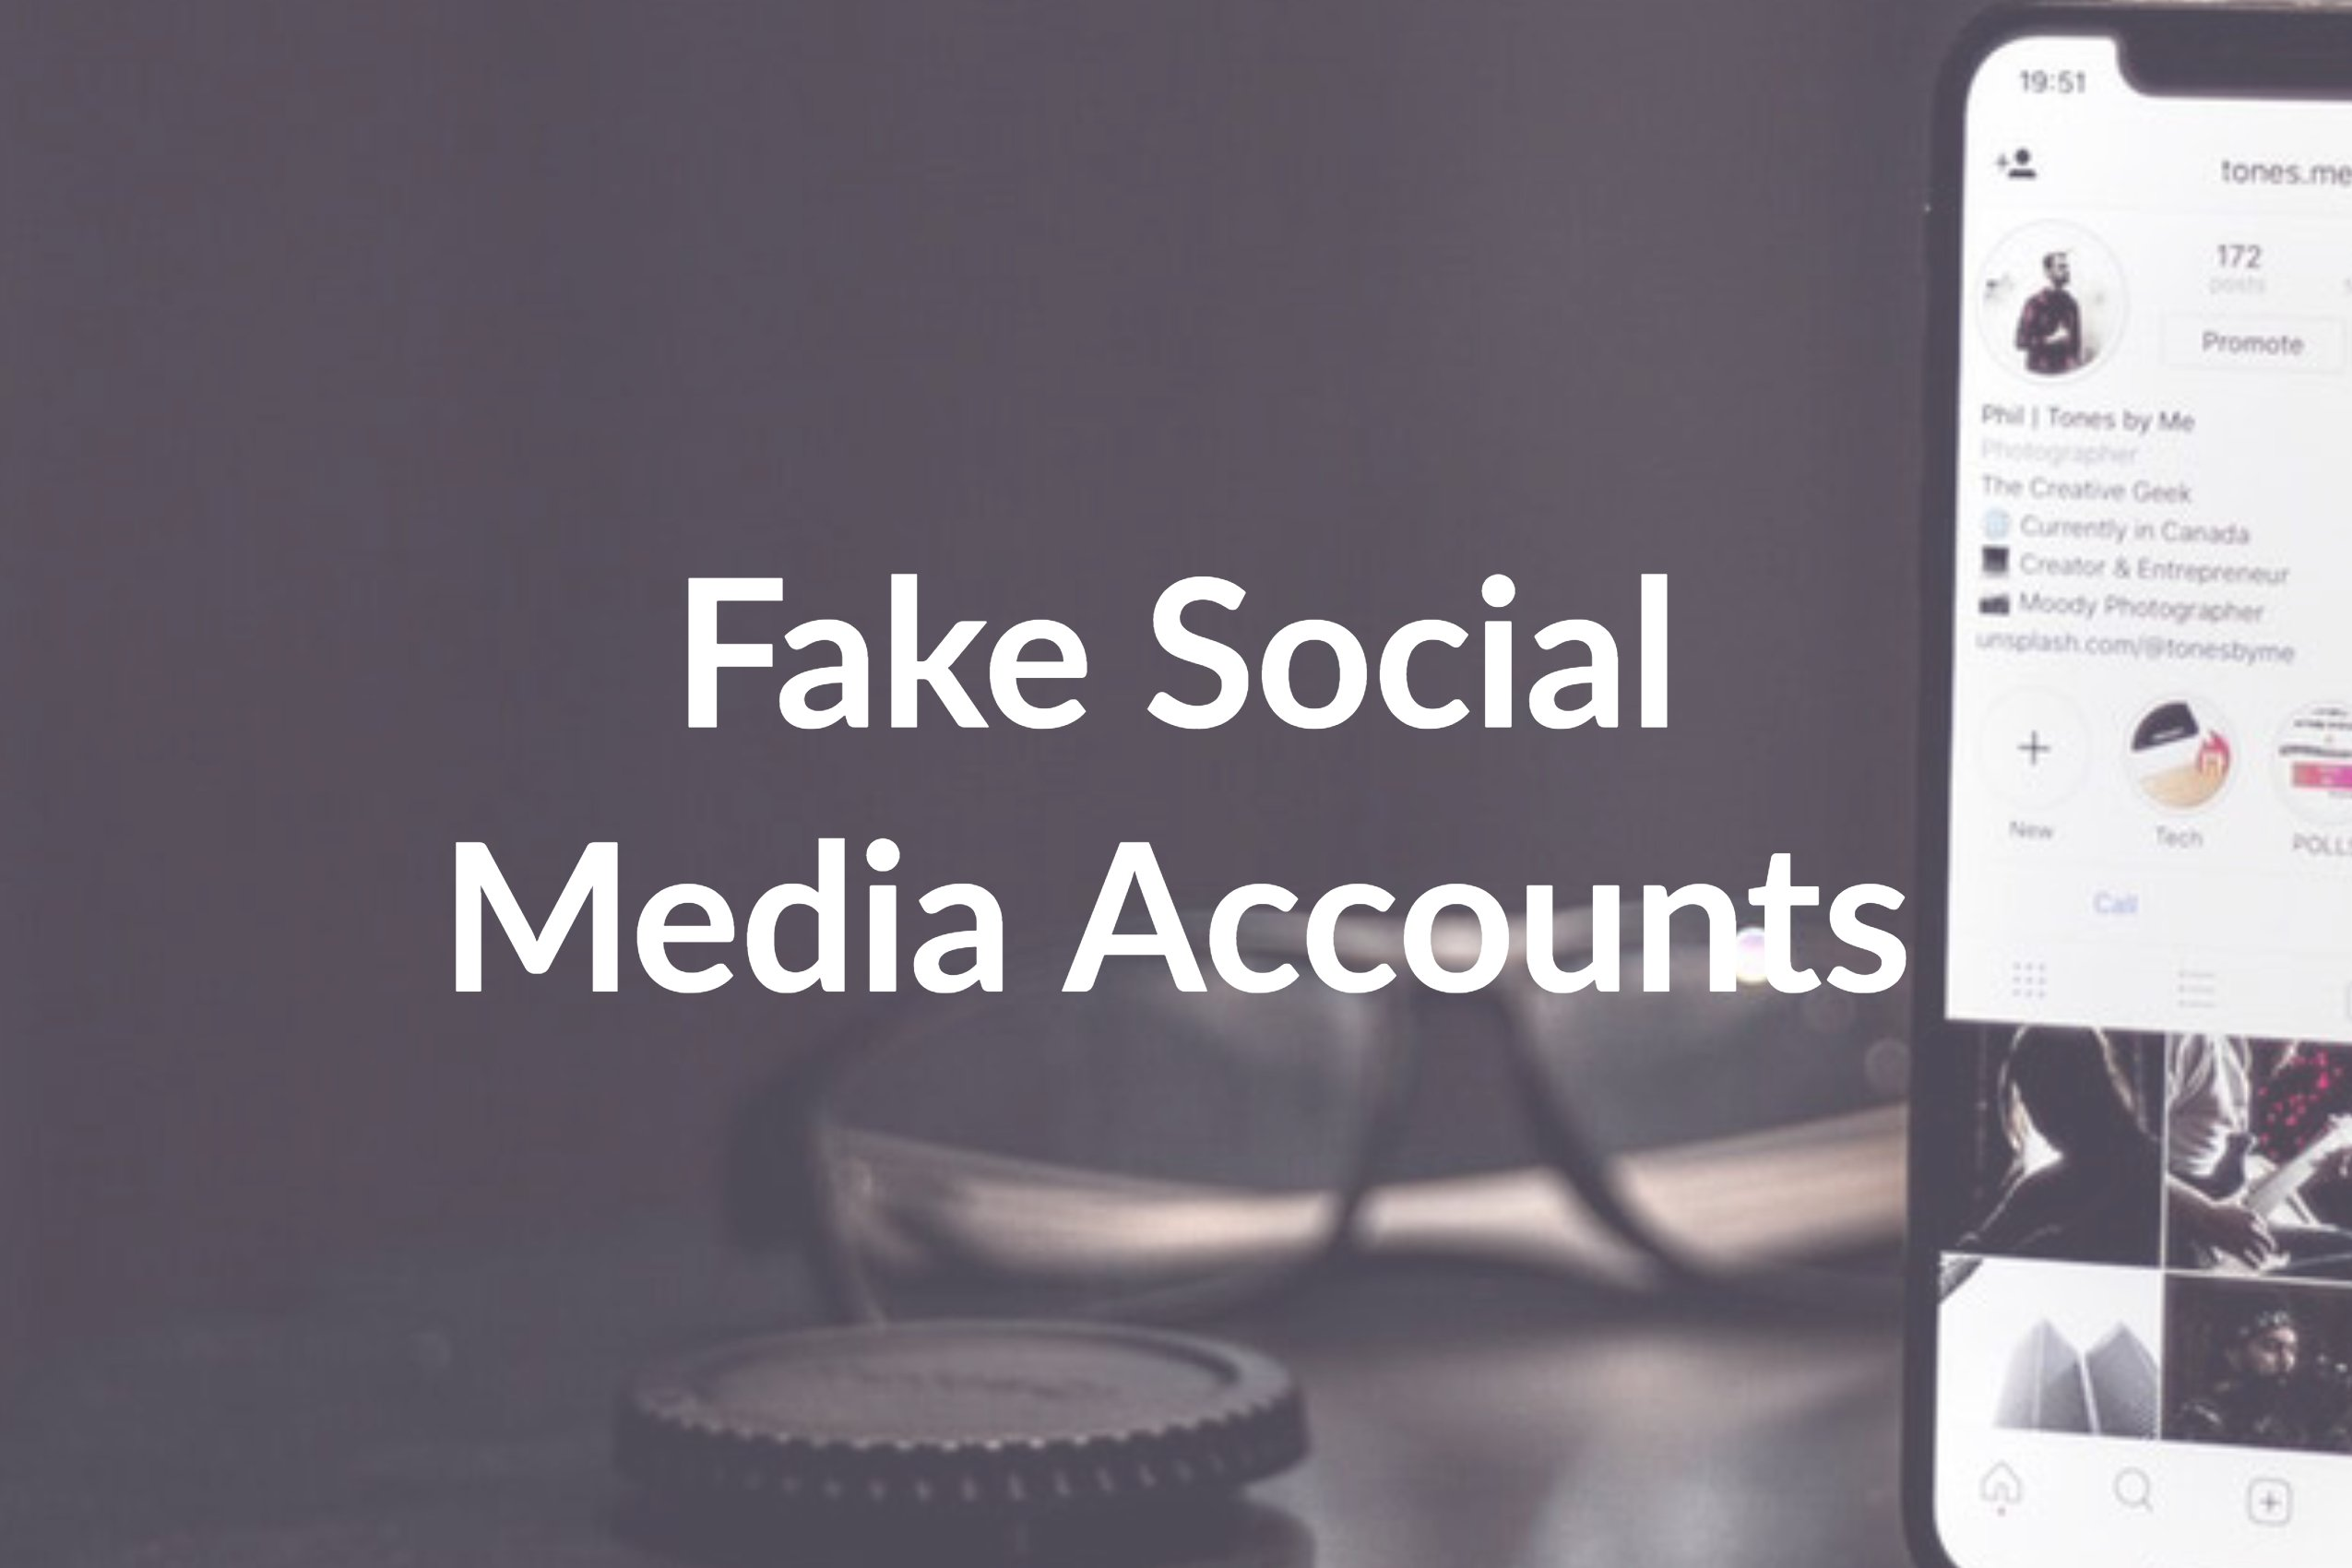 What You Need to Know About Fake Social Media Accounts